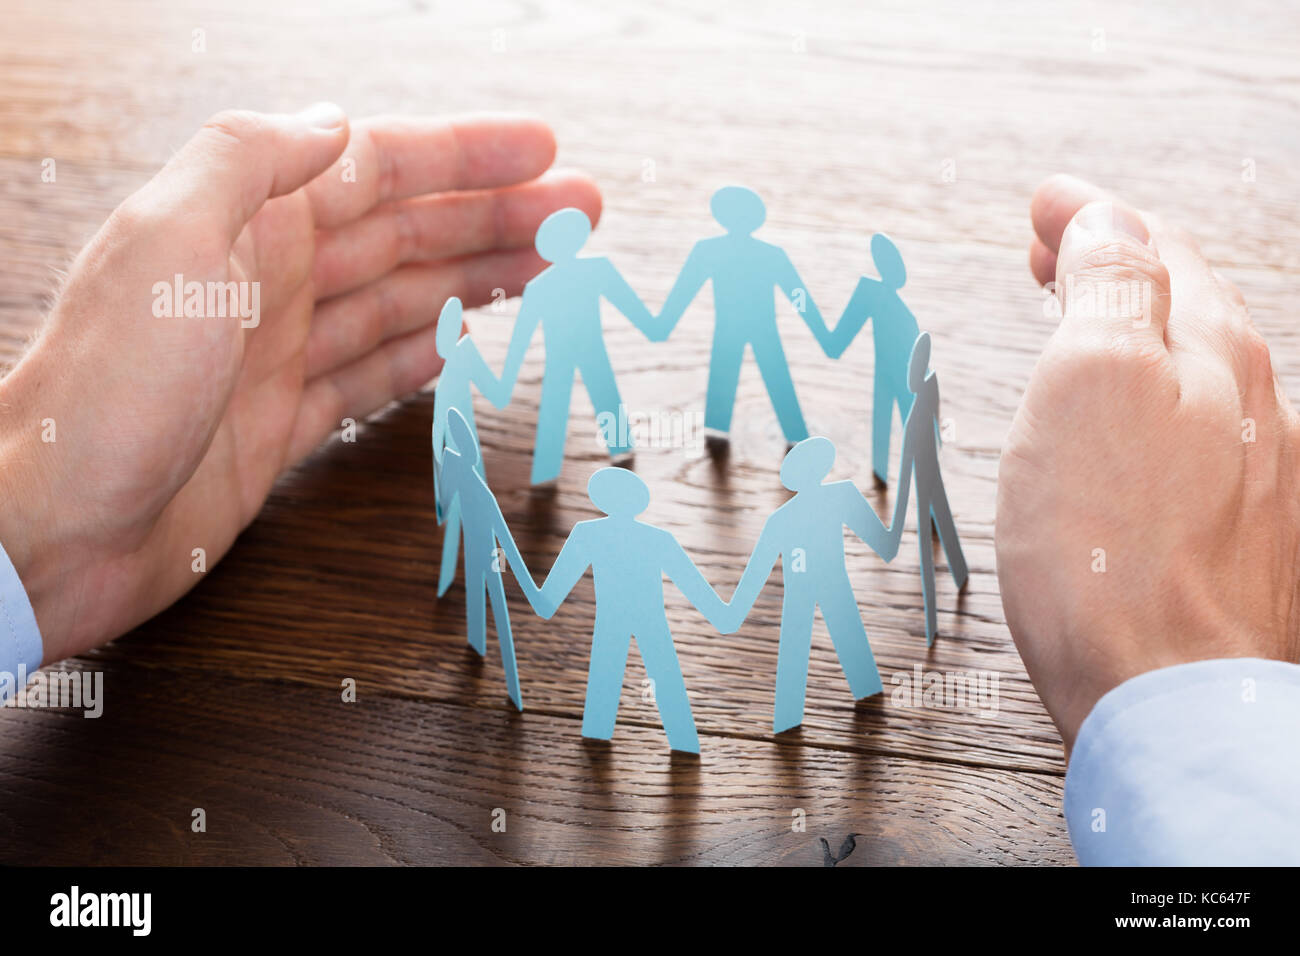 Close-up Of Businessperson Protecting Cut-out Figures On Wooden Desk Stock Photo